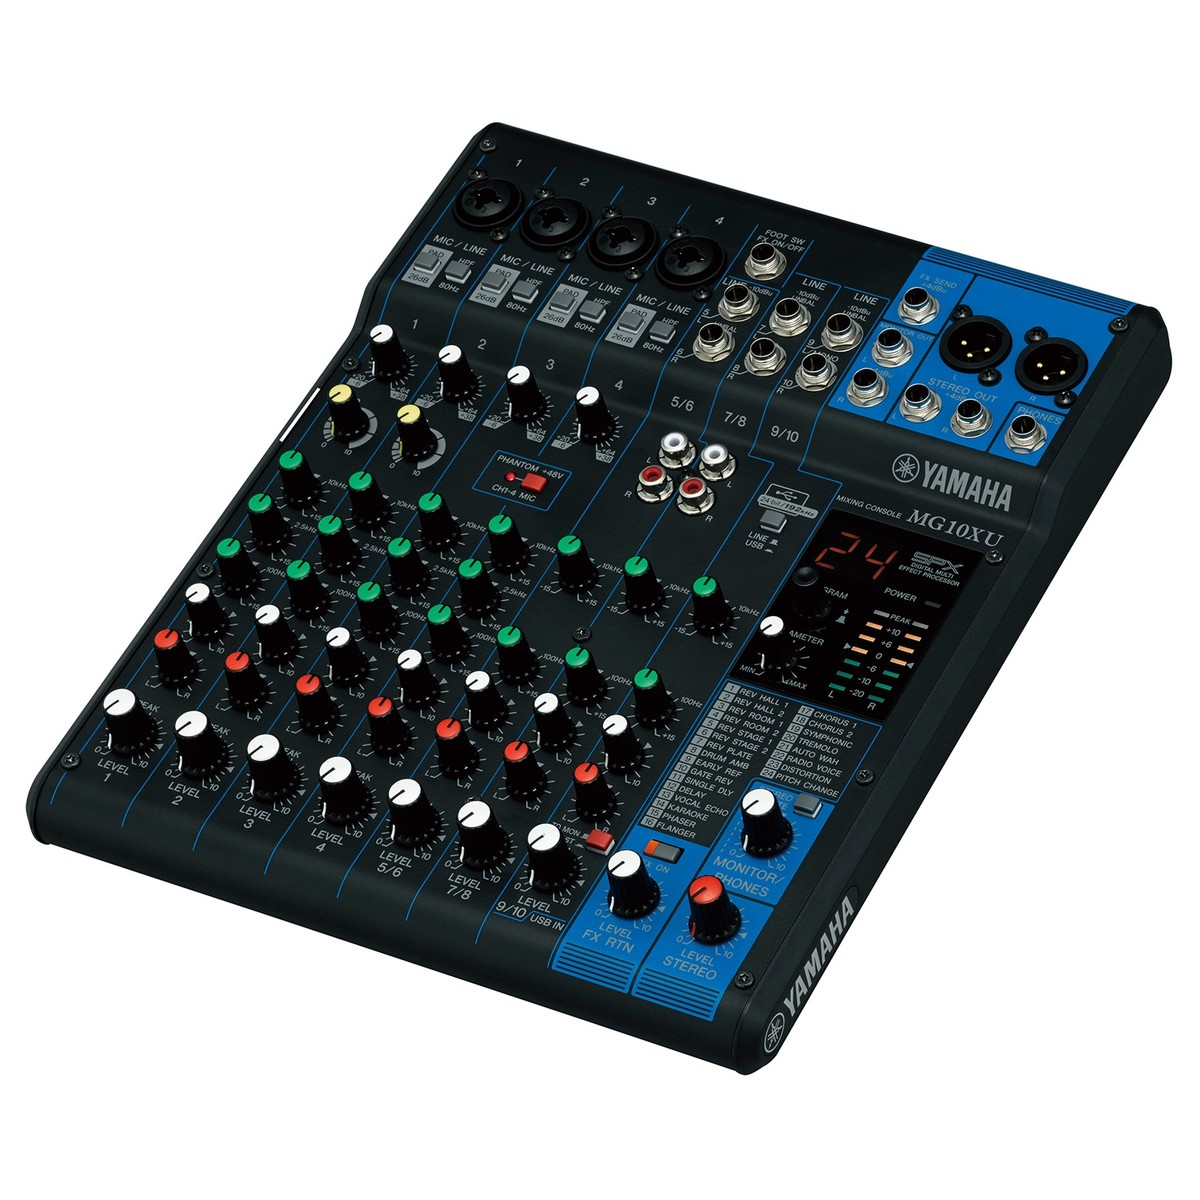 Yamaha MG10XU Analog USB Mixer. Loading zoom